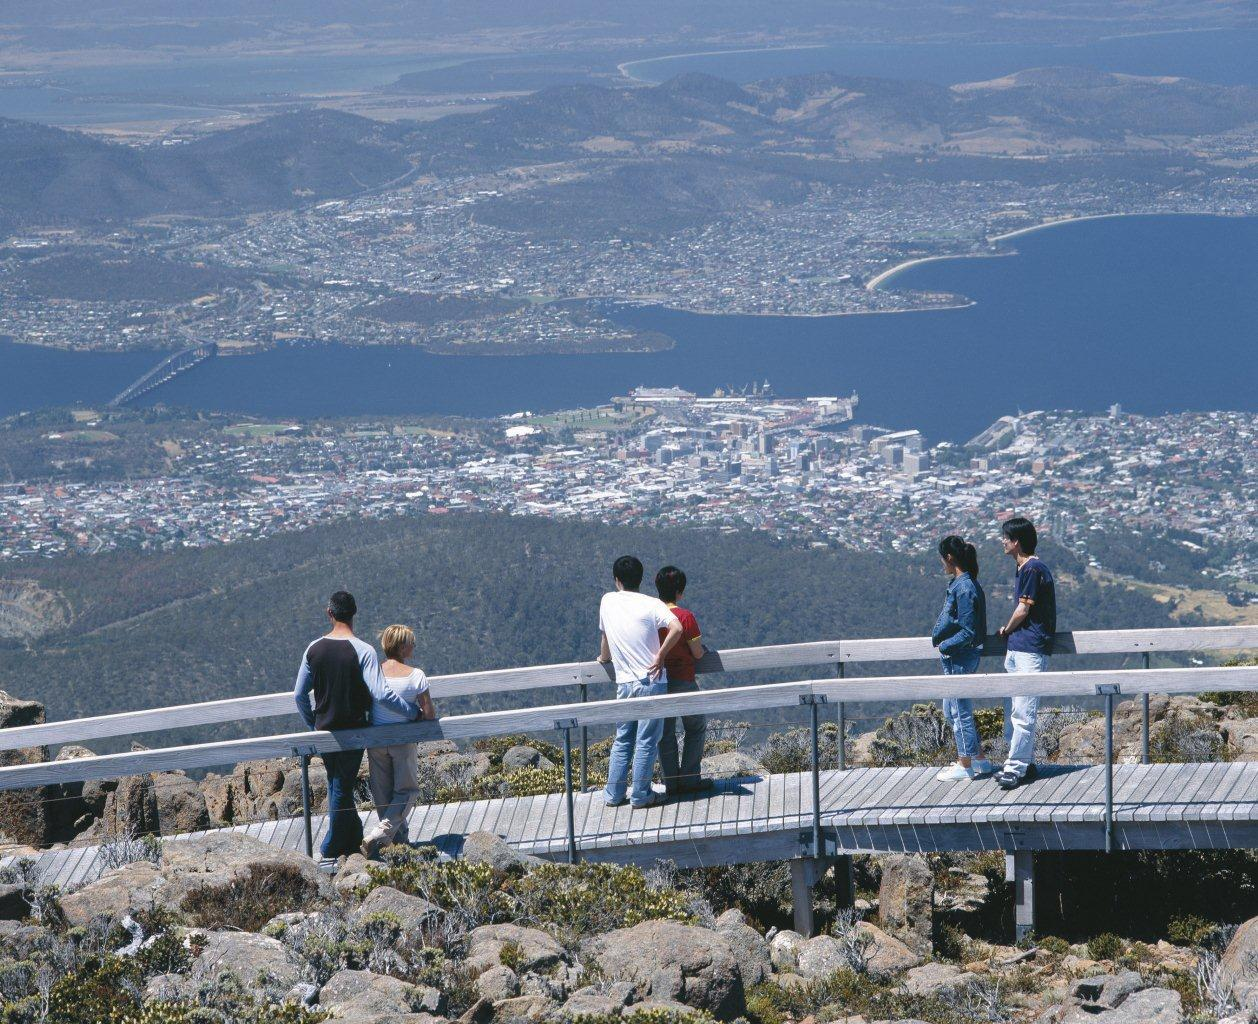 Some thoughts on what to do for a weekend trip to tasmania a weekend trip to tasmania solutioingenieria